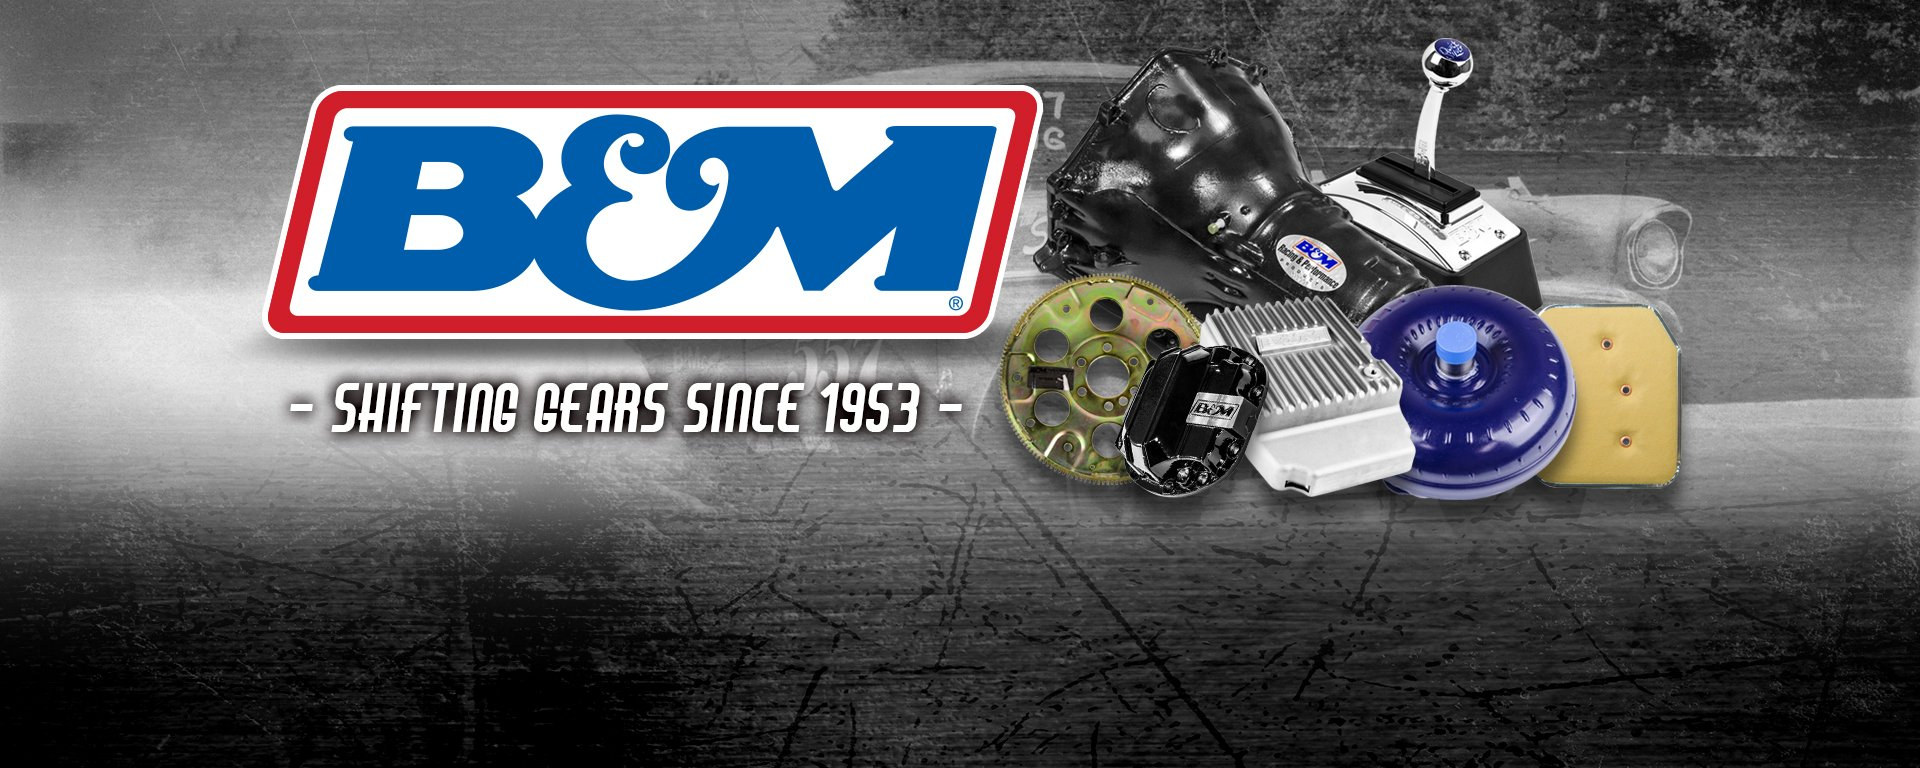 B&M - Transmissions, Shifters, Torque Converters, Diff